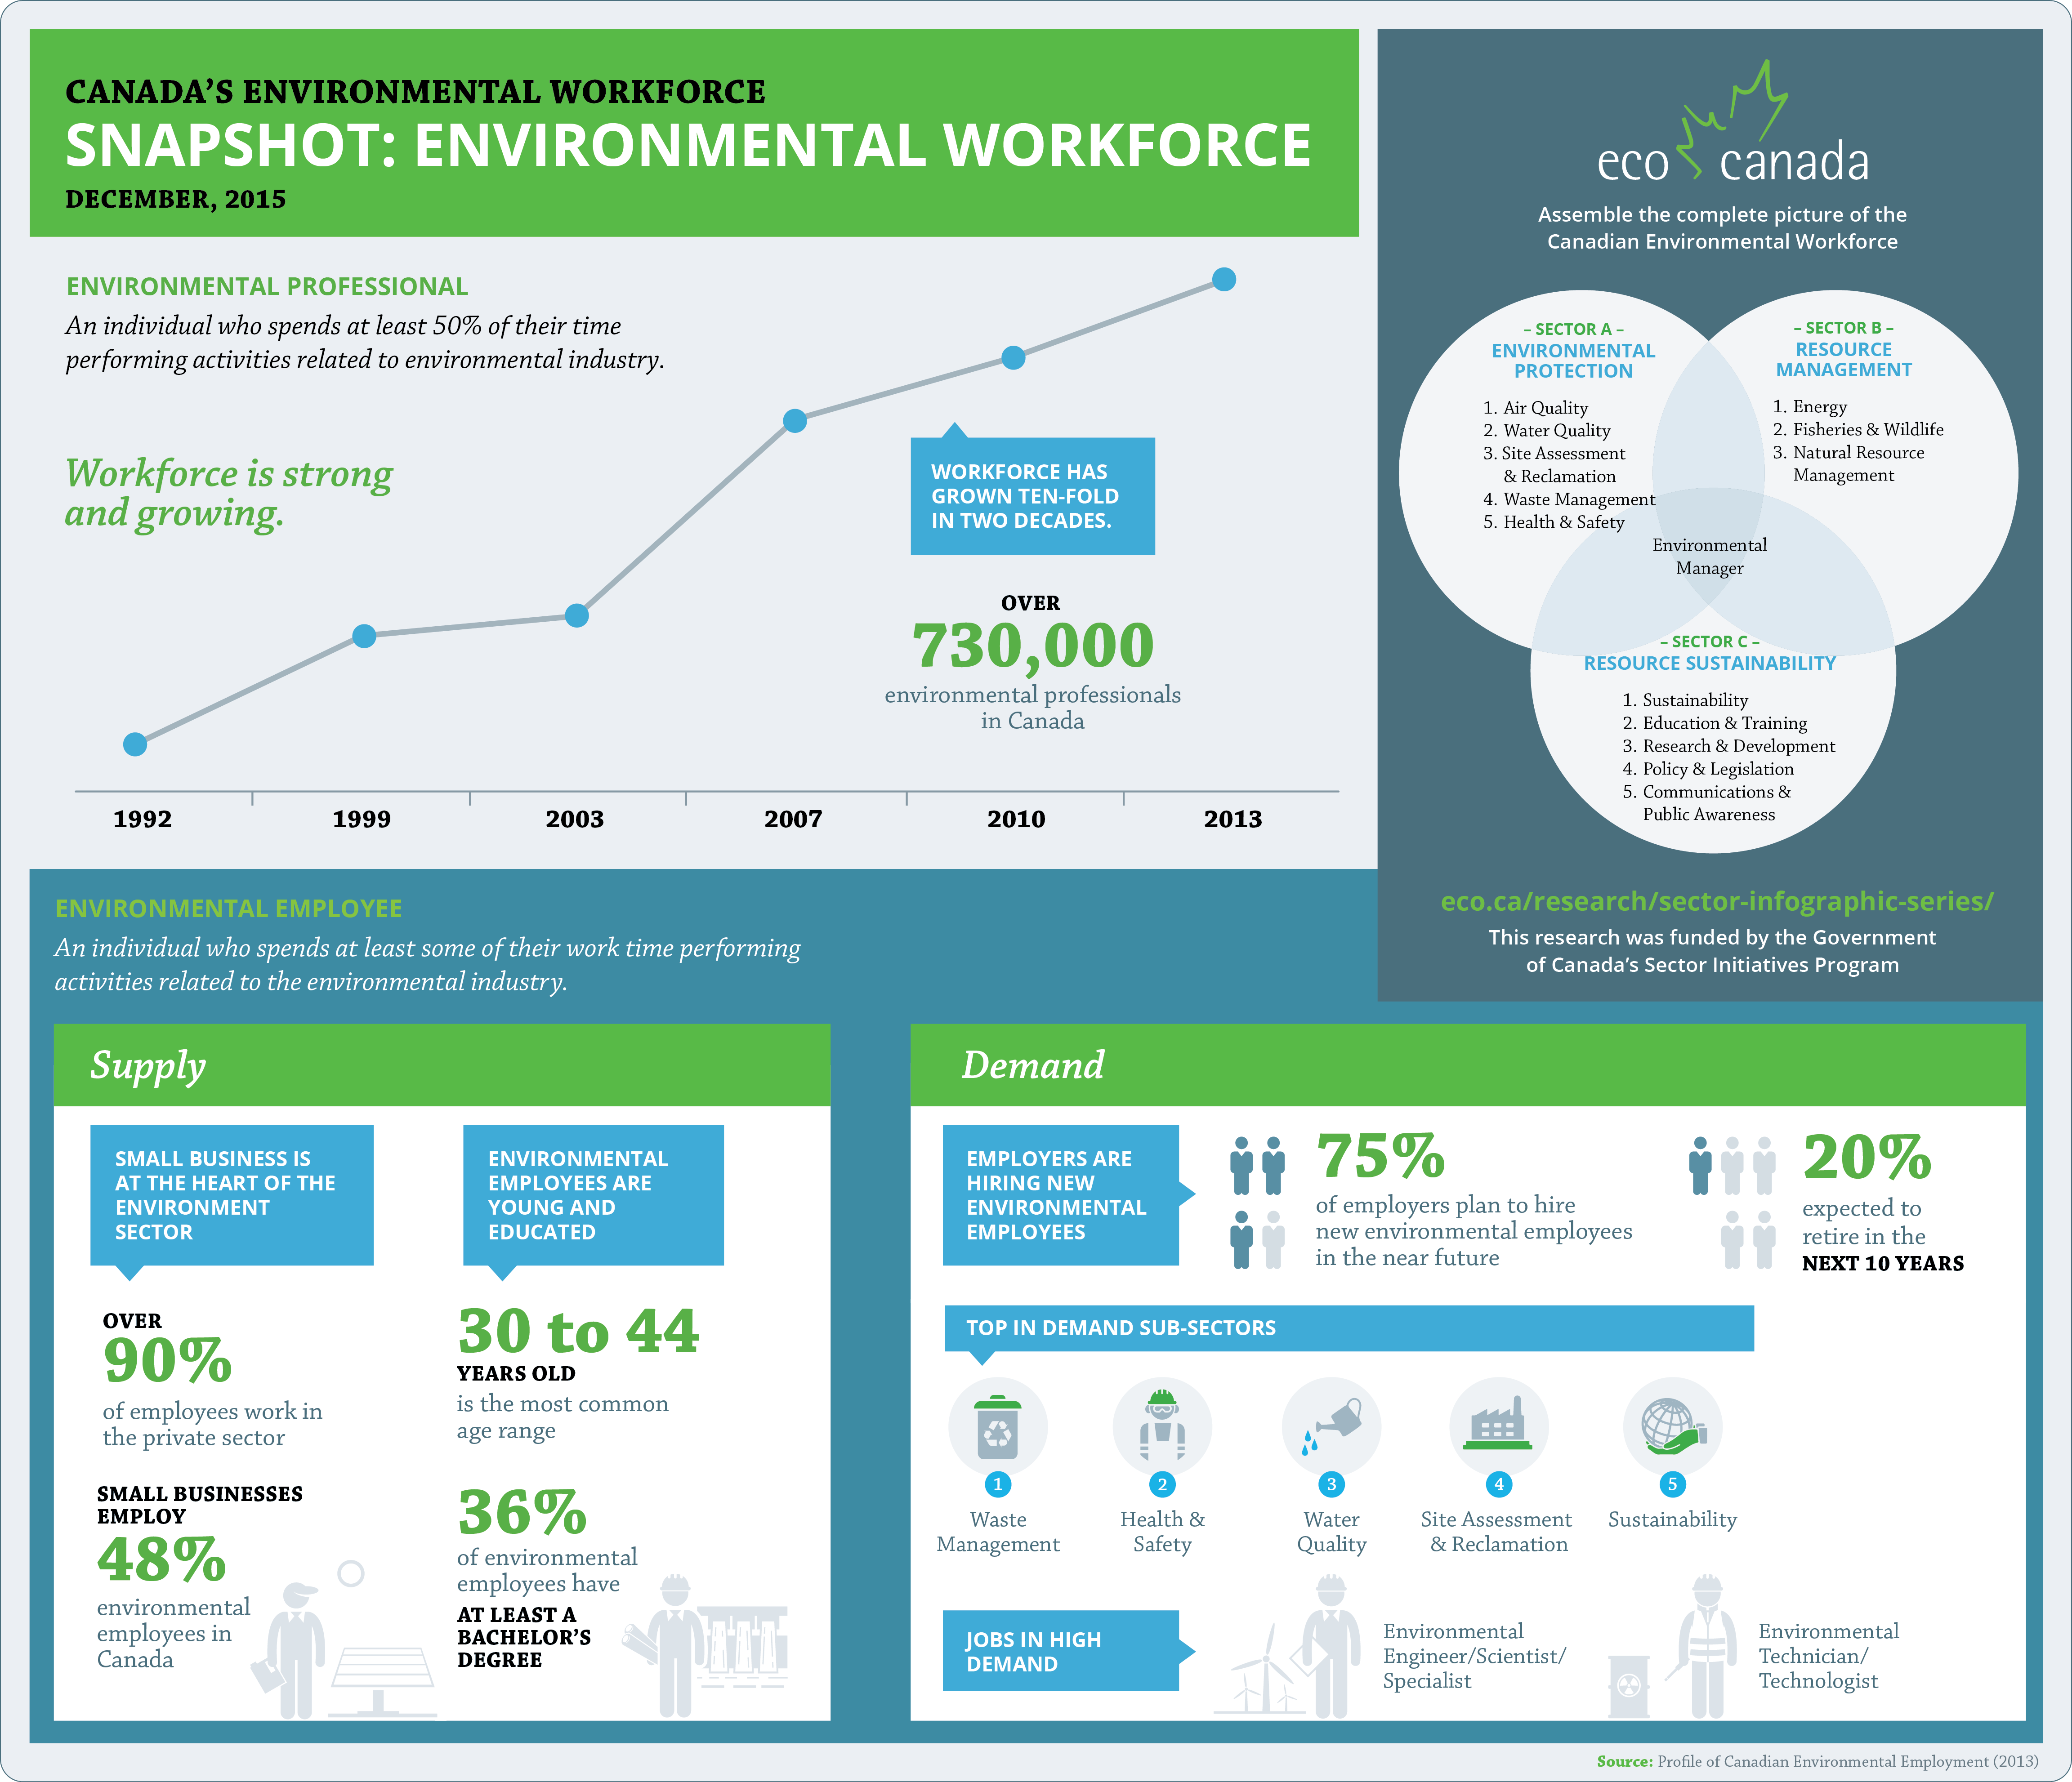 Environmental Workforce Snapshot